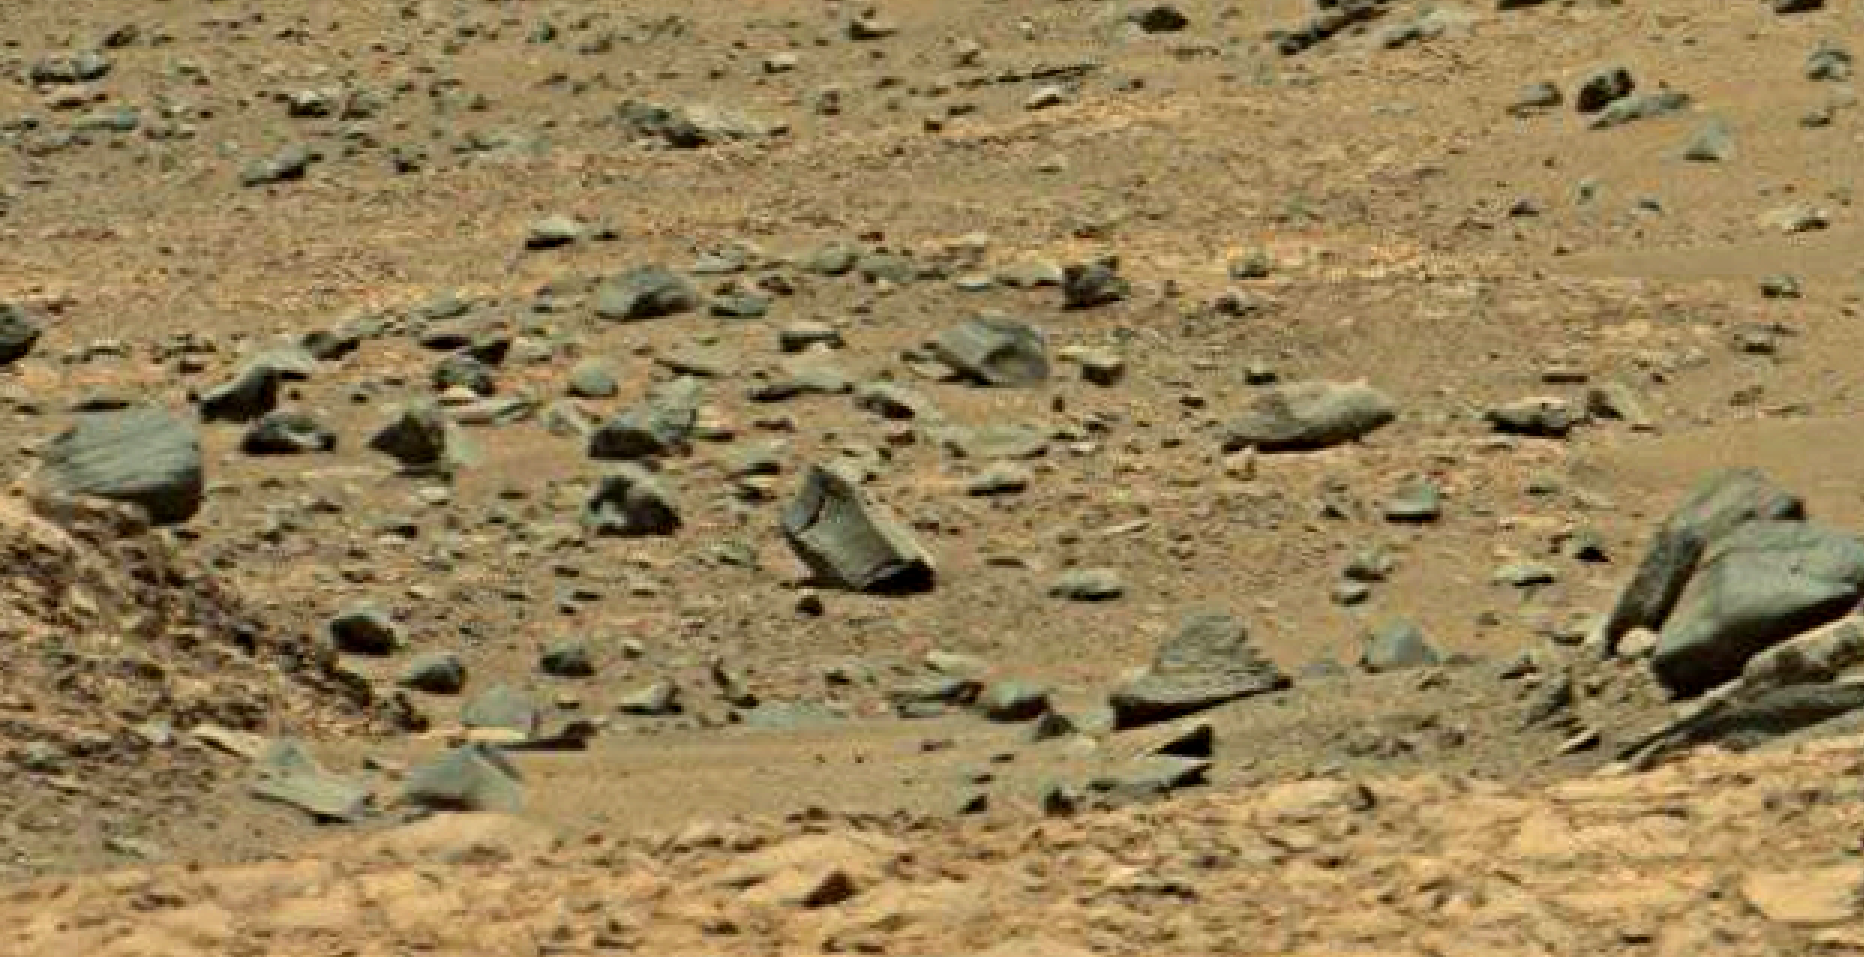 mars sol 1378 anomaly-artifacts 4 was life on mars